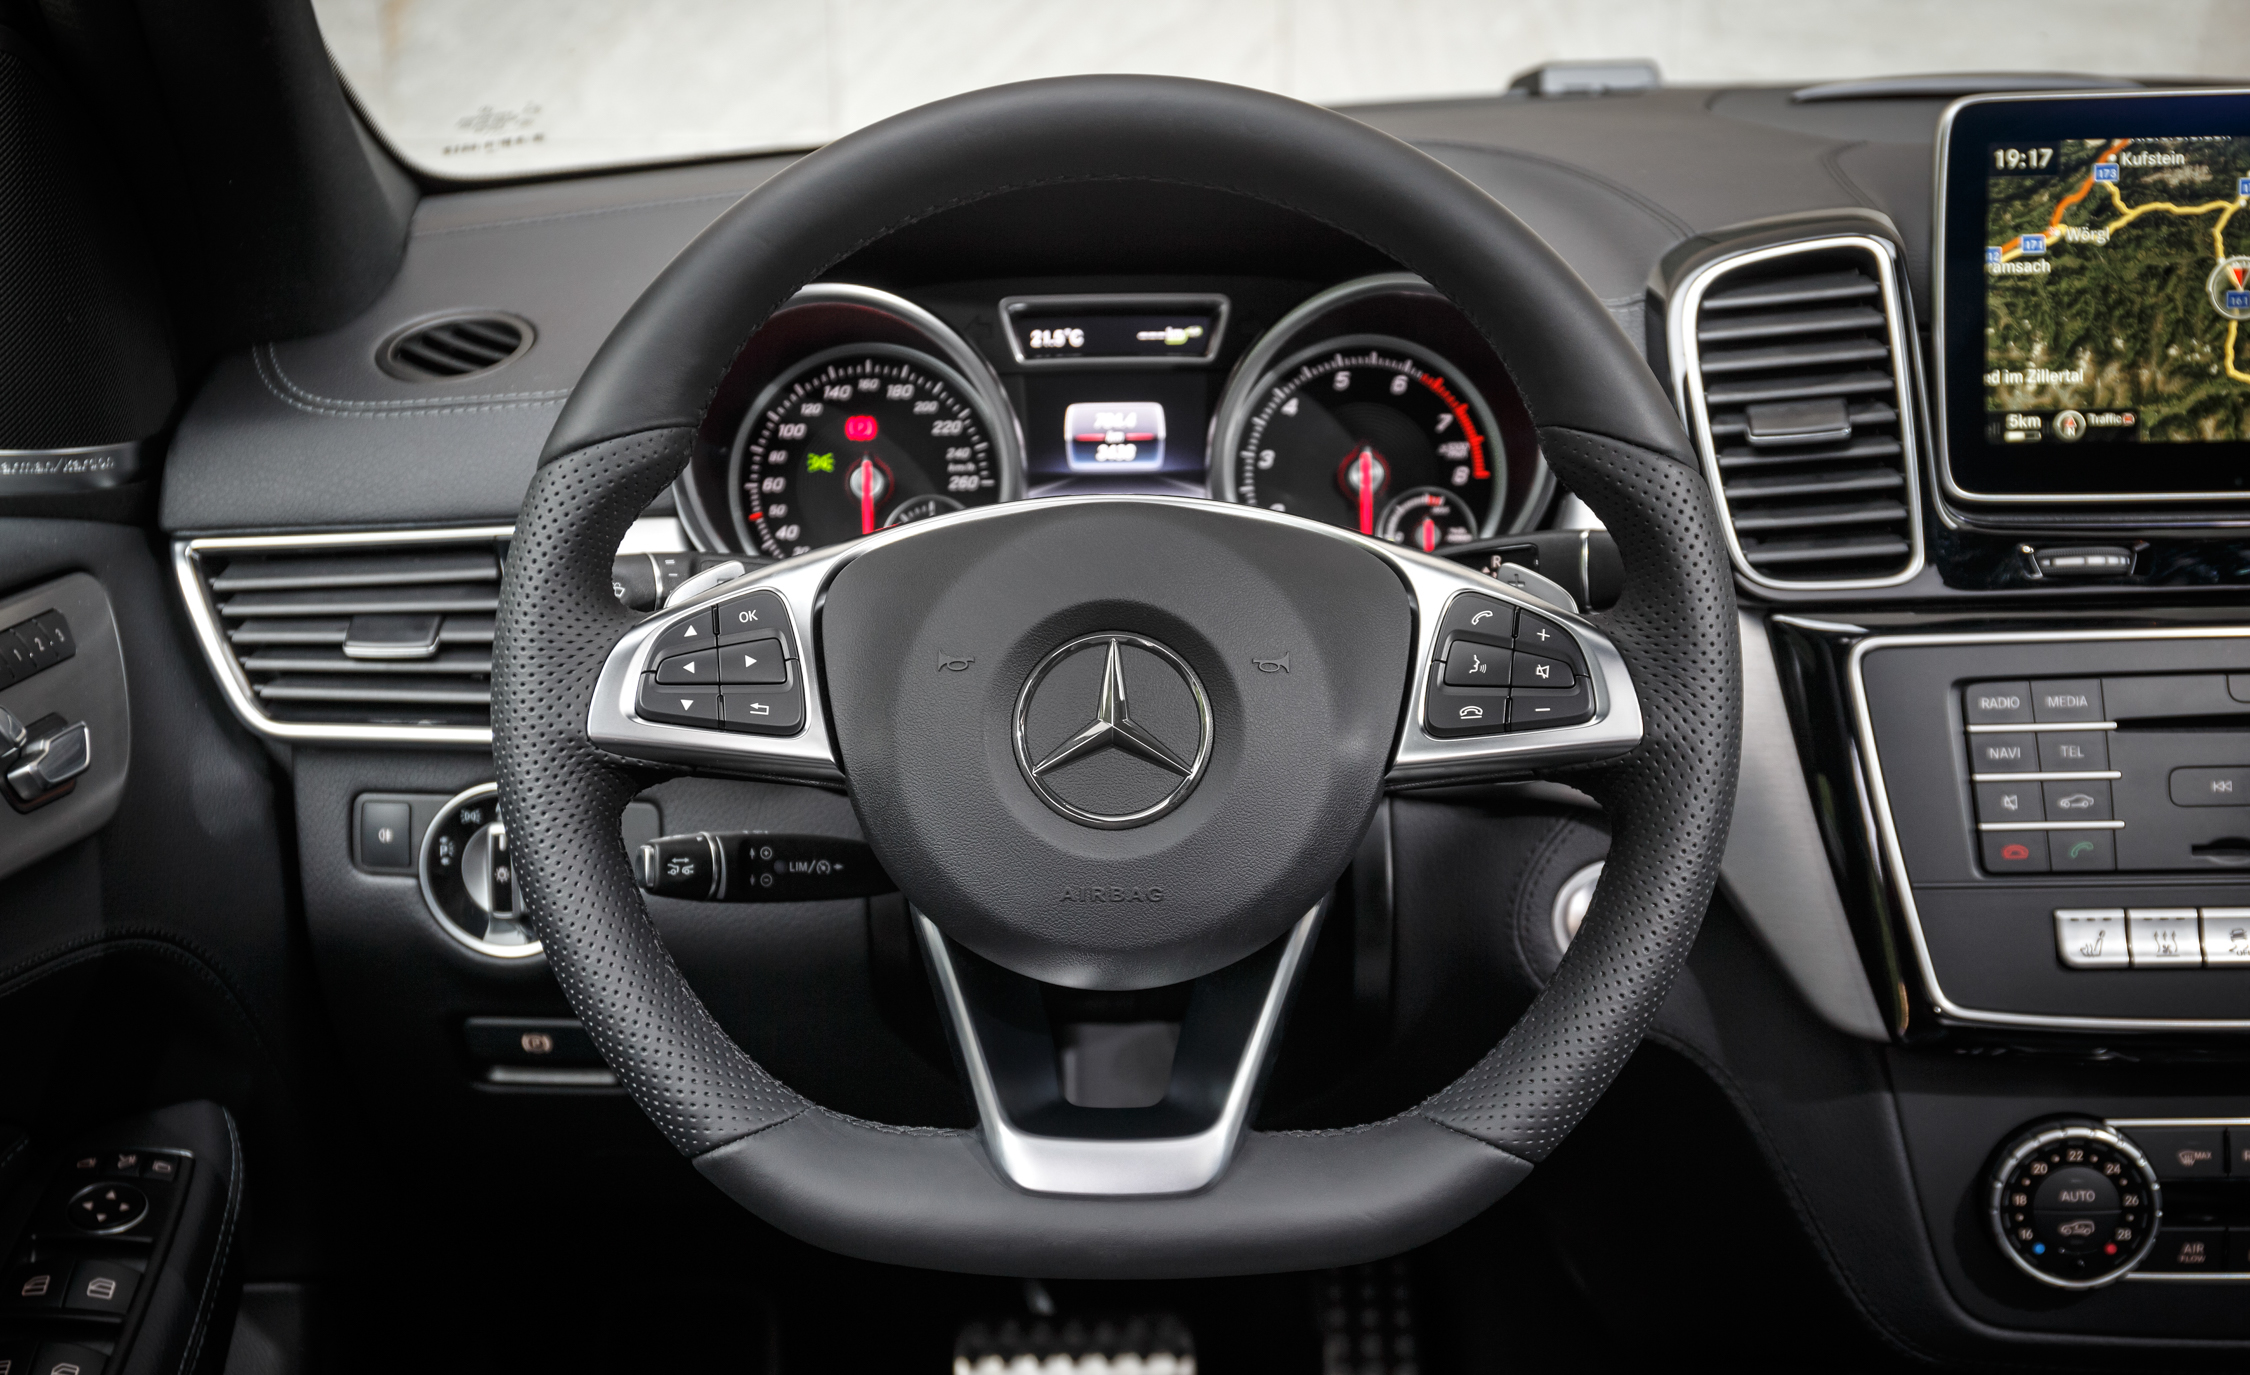 2016 Mercedes-Benz GLE500e 4MATIC Interior Cockpit